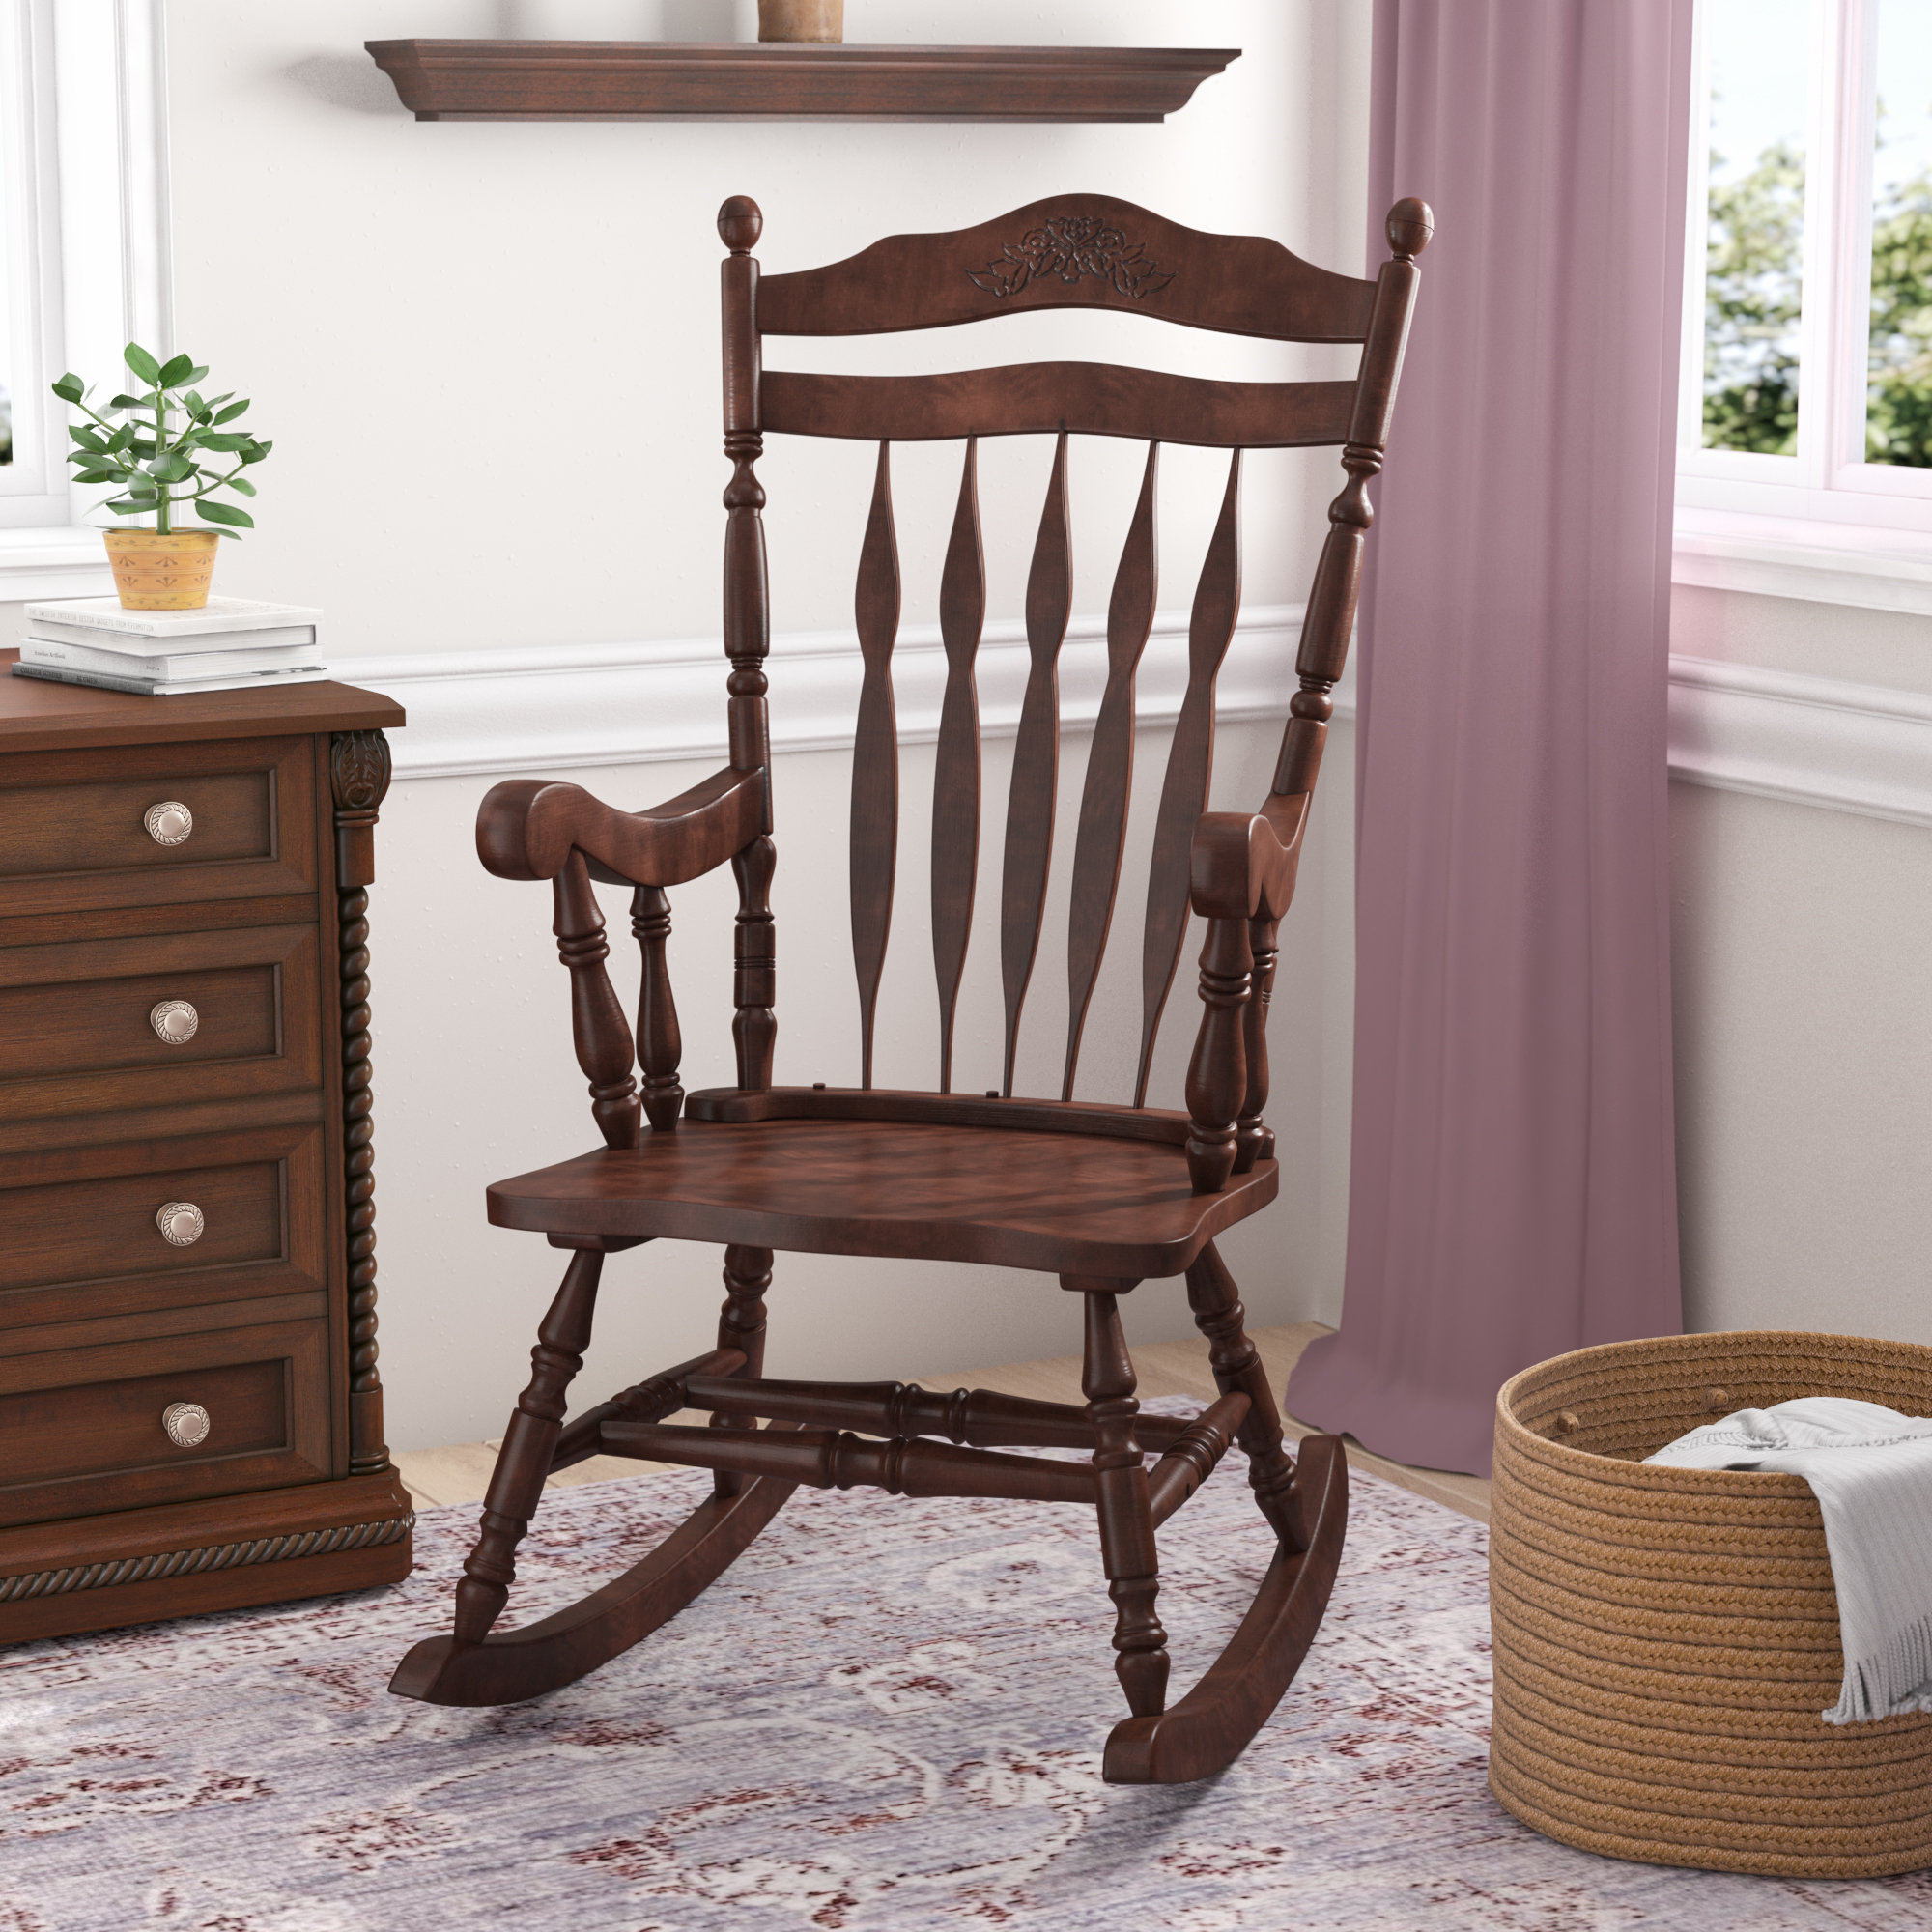 Hanlon Rocking Chair With Regard To Espresso Brown Rocking Chairs (#11 of 20)